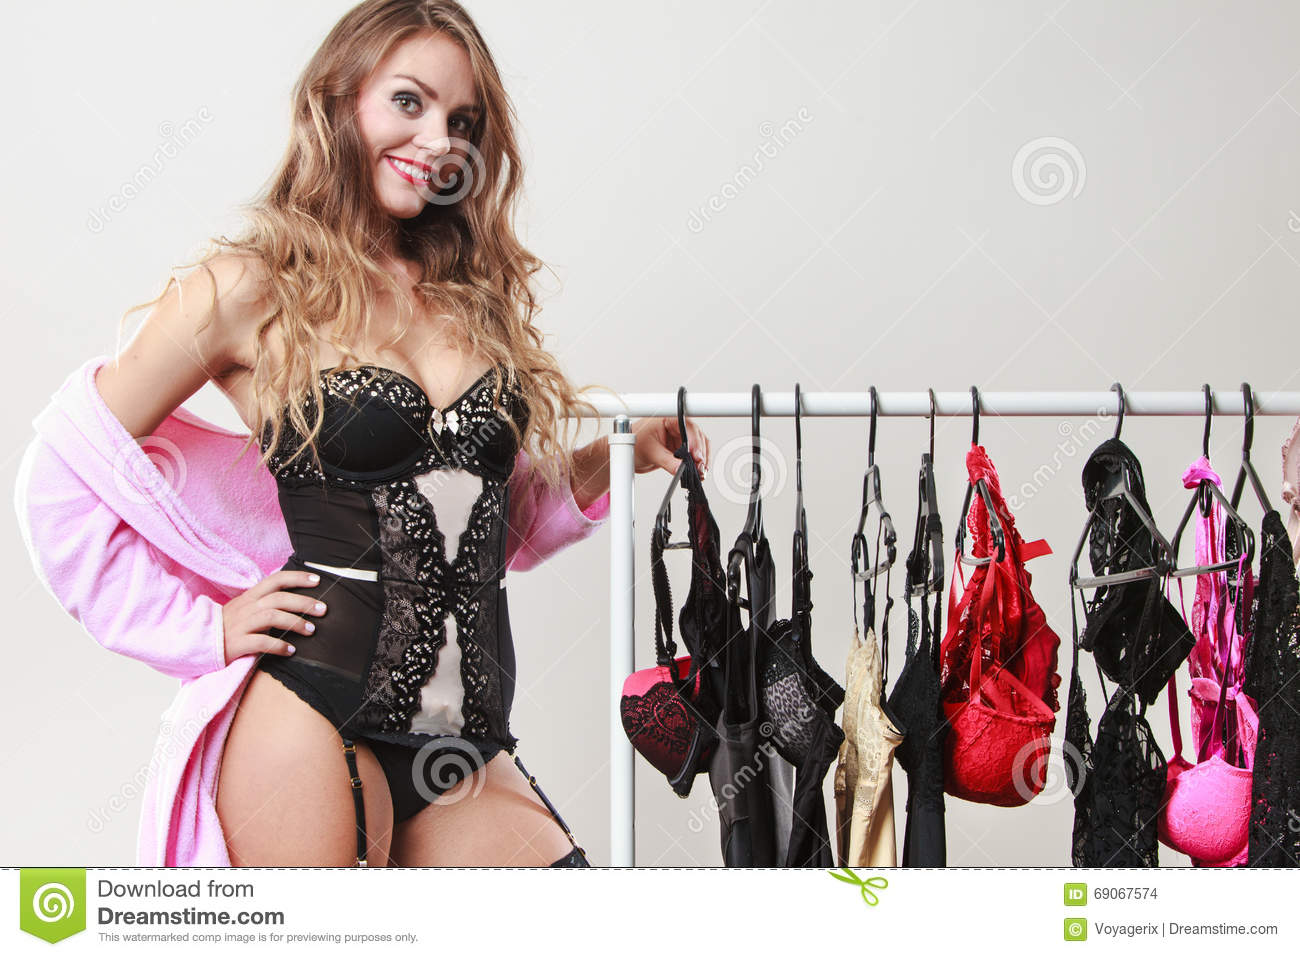 1b4141af8 Woman Buyer In Shop With Lingerie. Stock Photo - Image of shopper ...